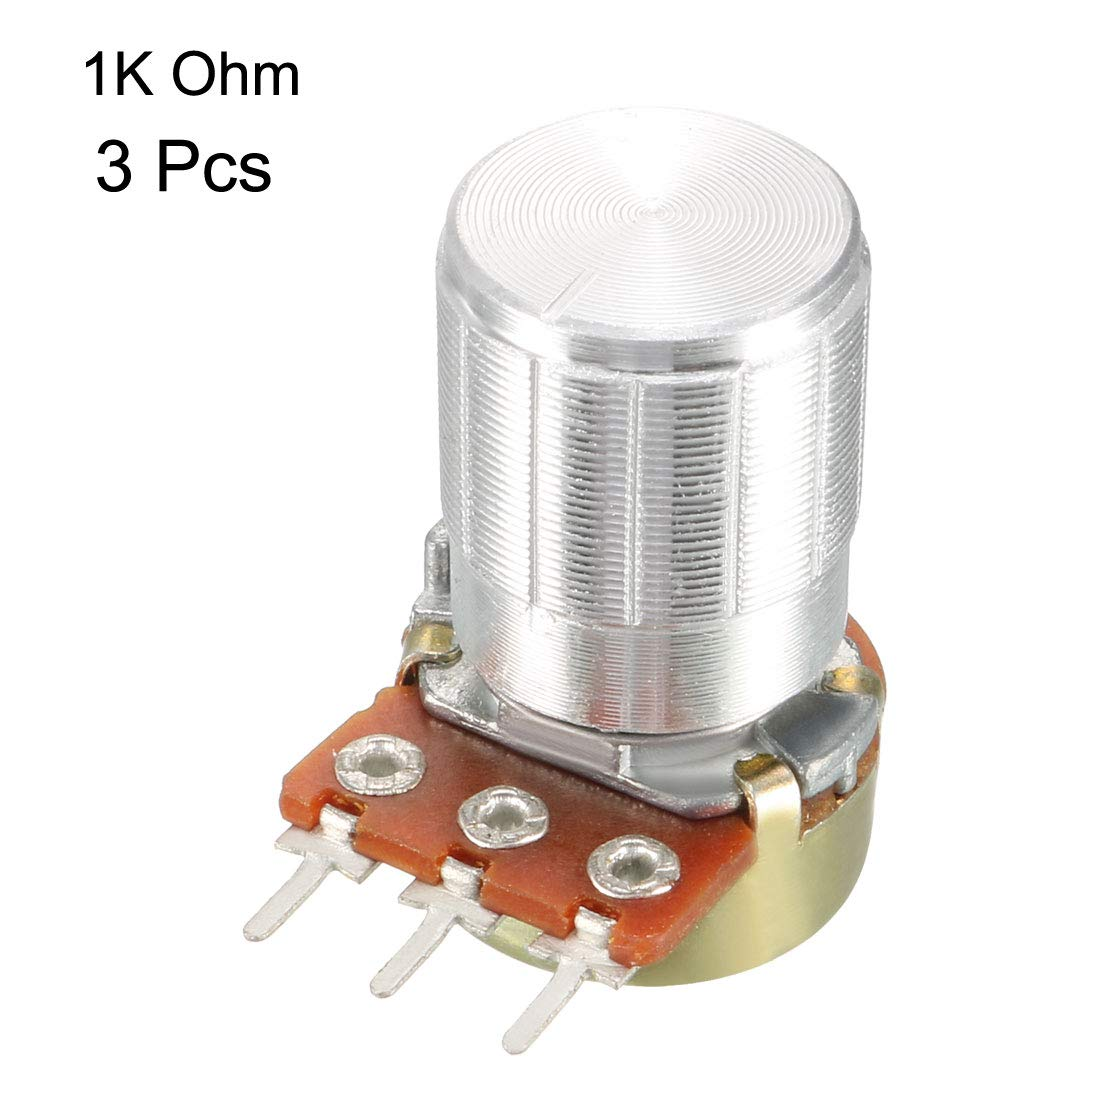 sourcing map WH148 2Pcs 1K Ohm Variable Resistors Single Turn Rotary Carbon Film Taper Potentiometer with Knobs